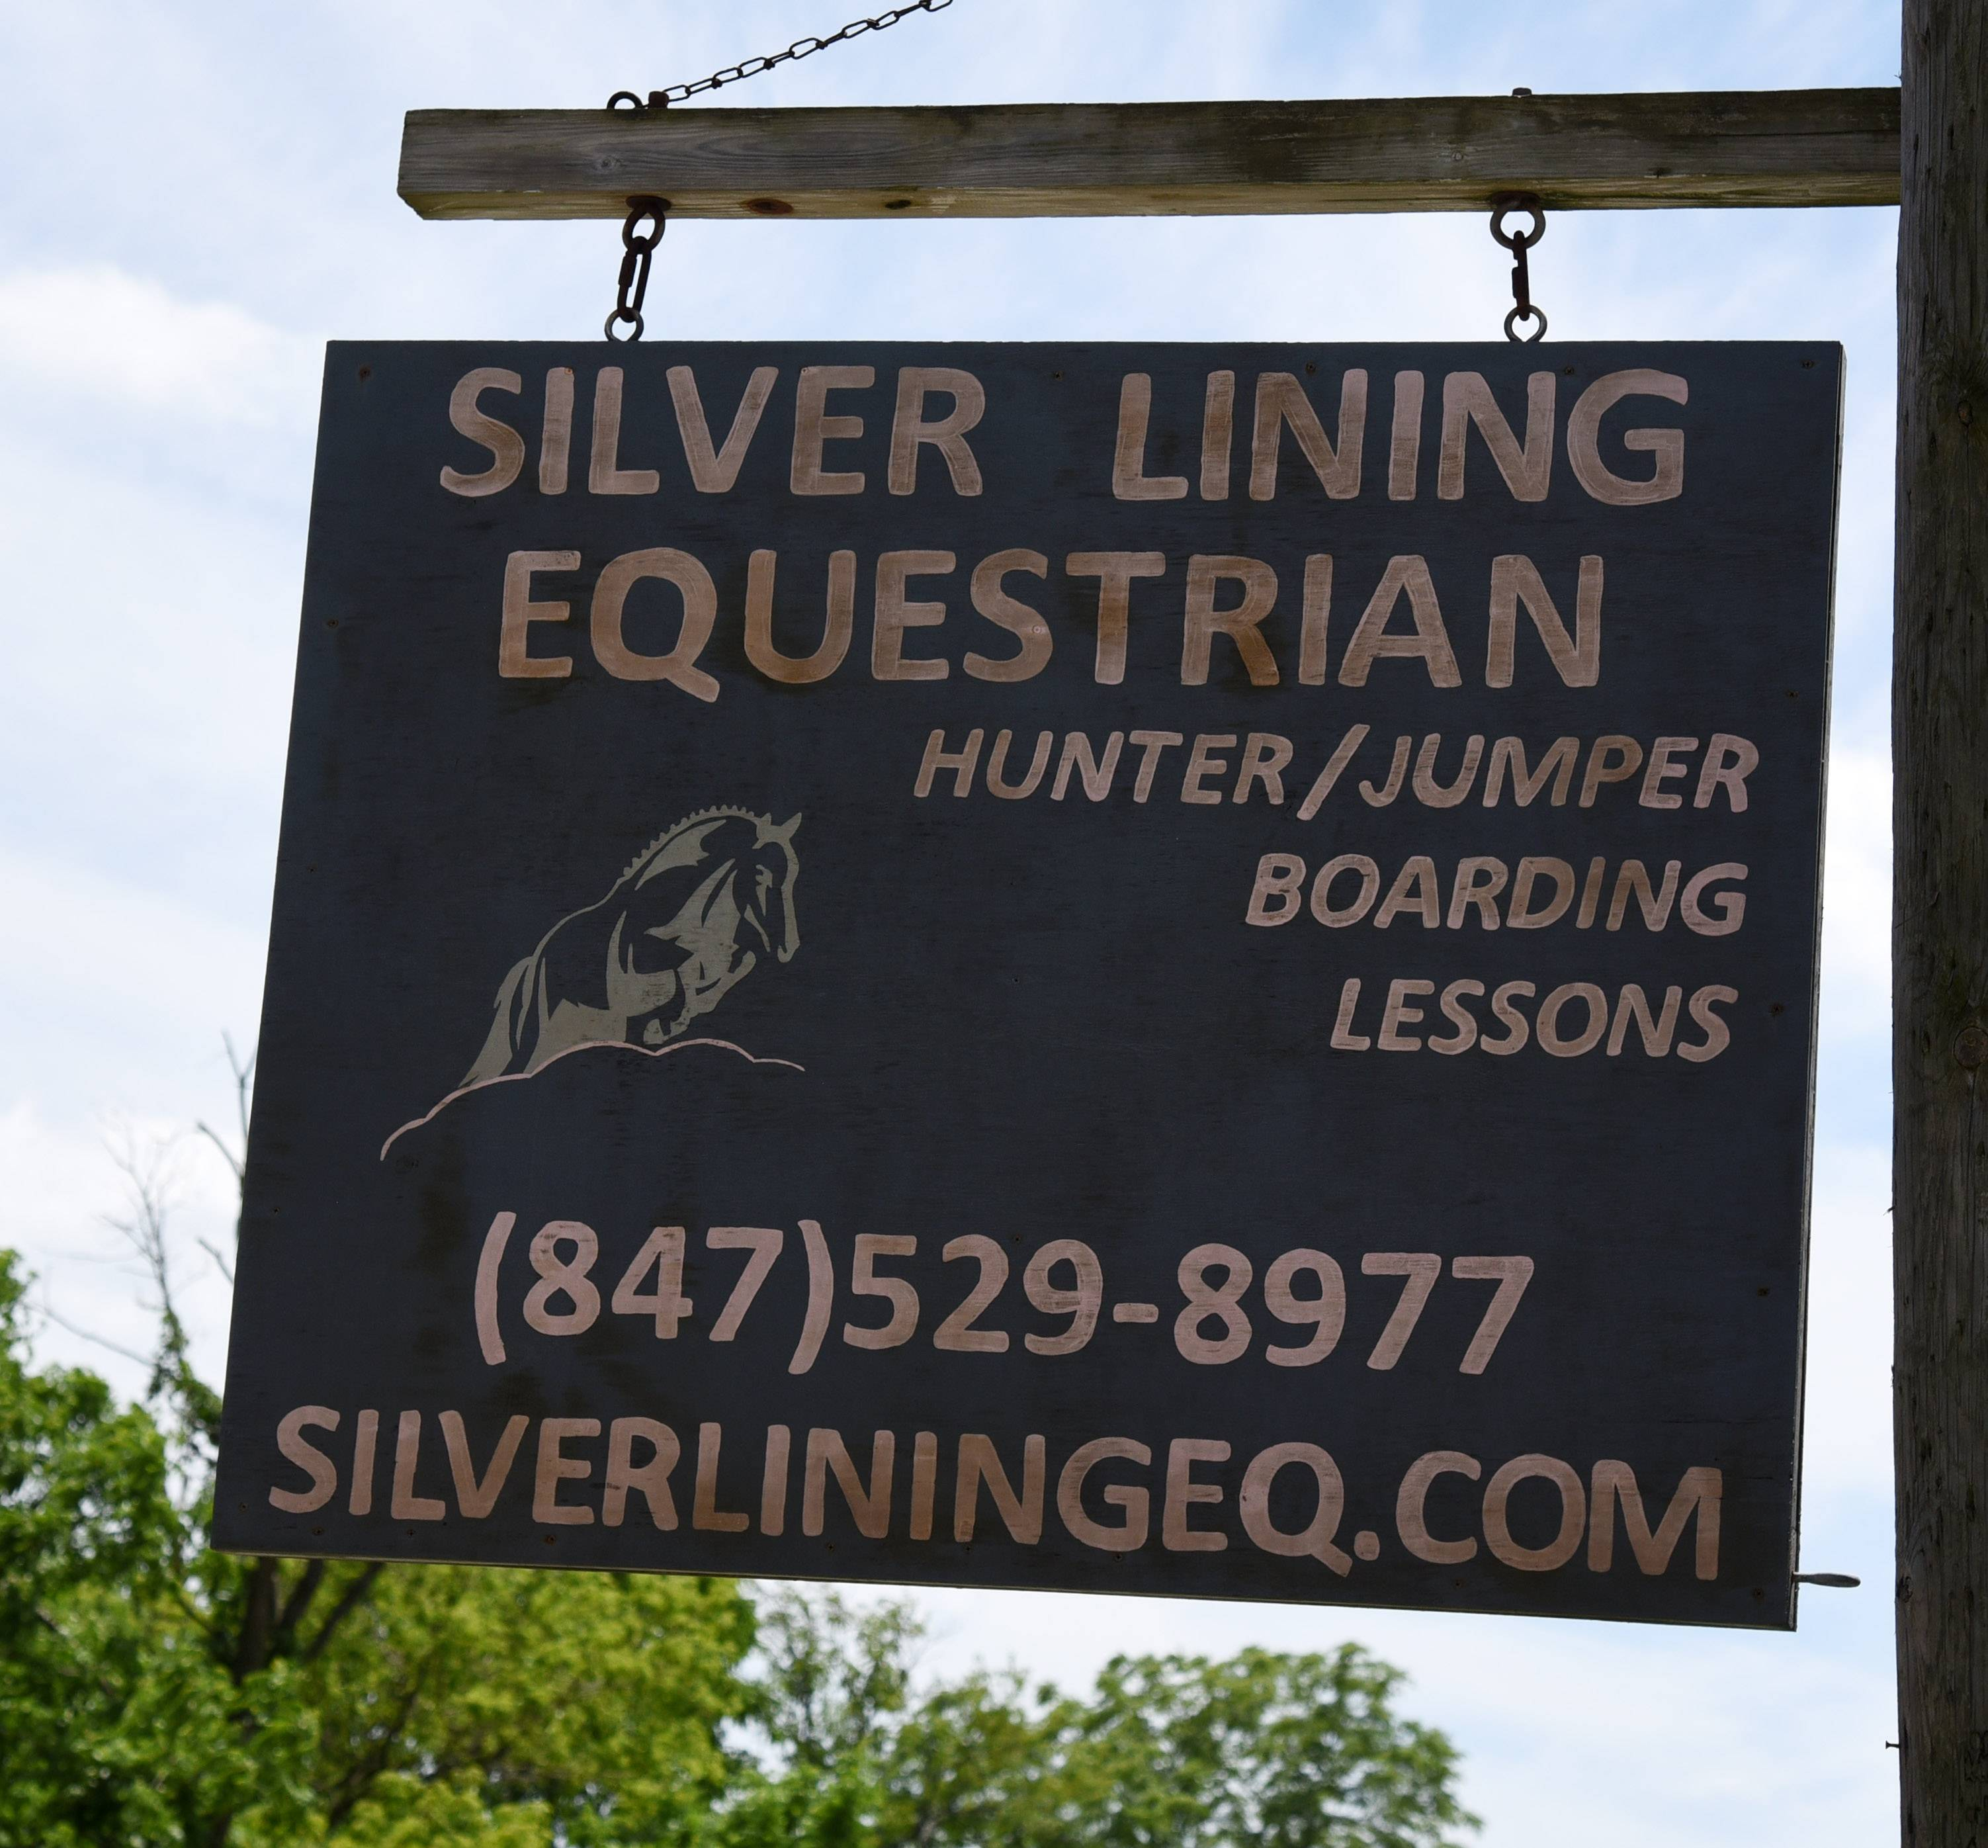 Lake in the Hills has evicted the Silver Lining Equestrian from village-owned property.